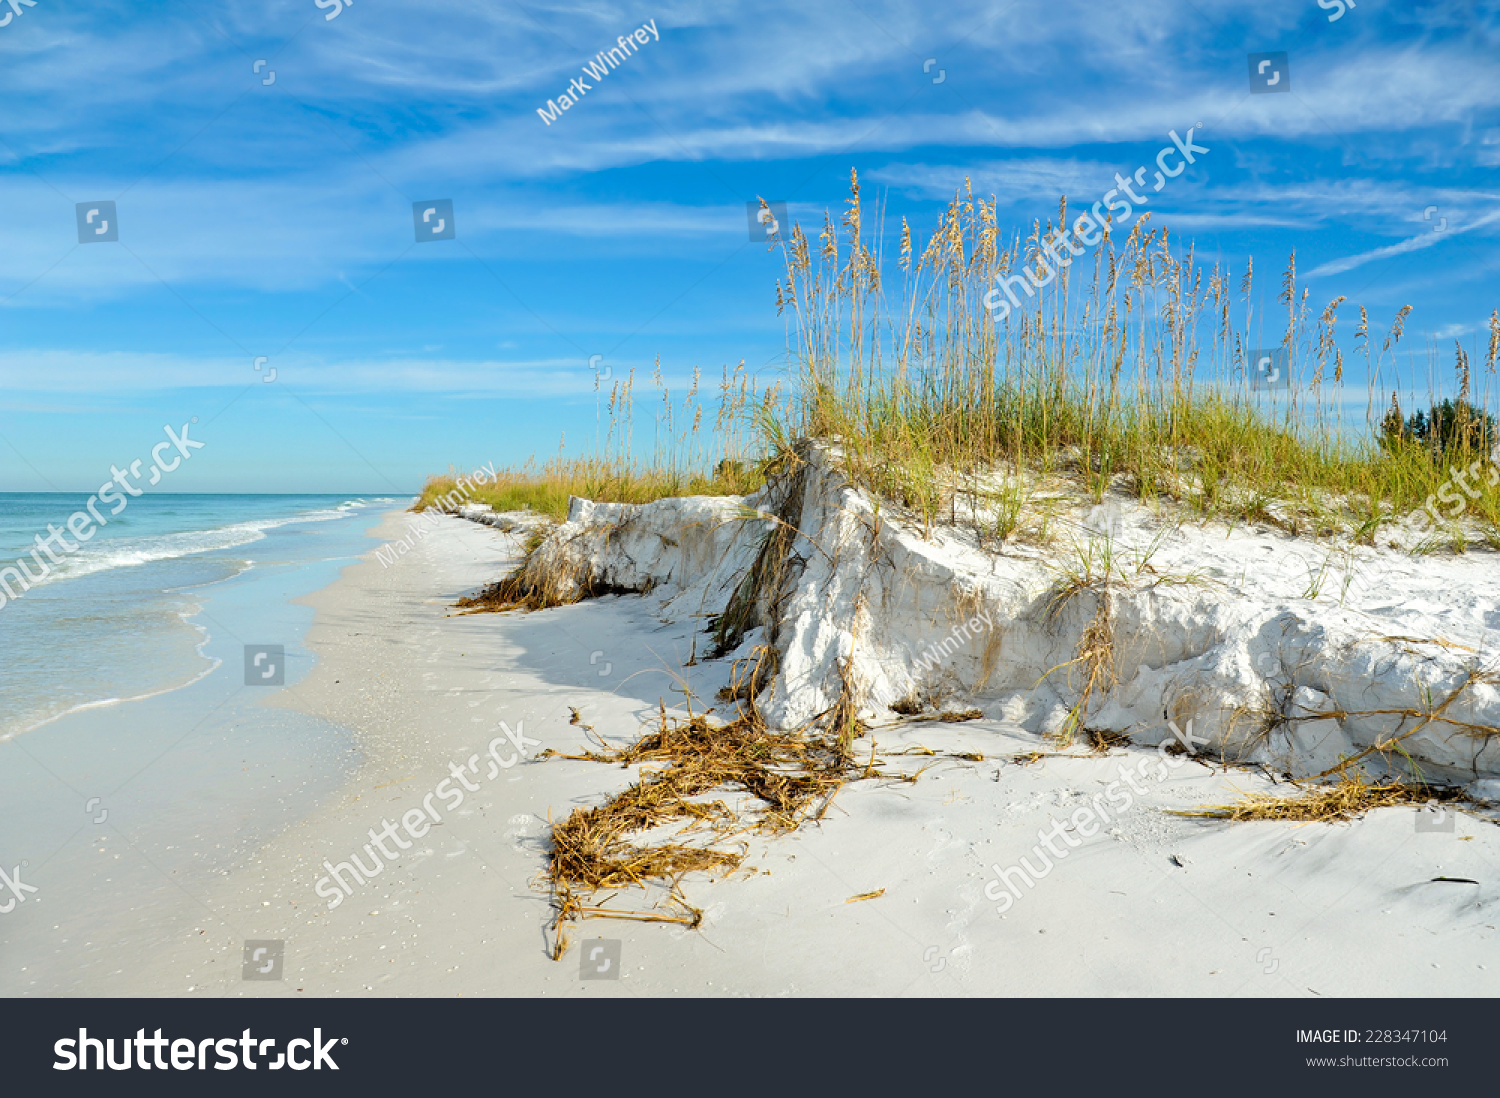 stock-photo-beautiful-sand-dunes-and-sea